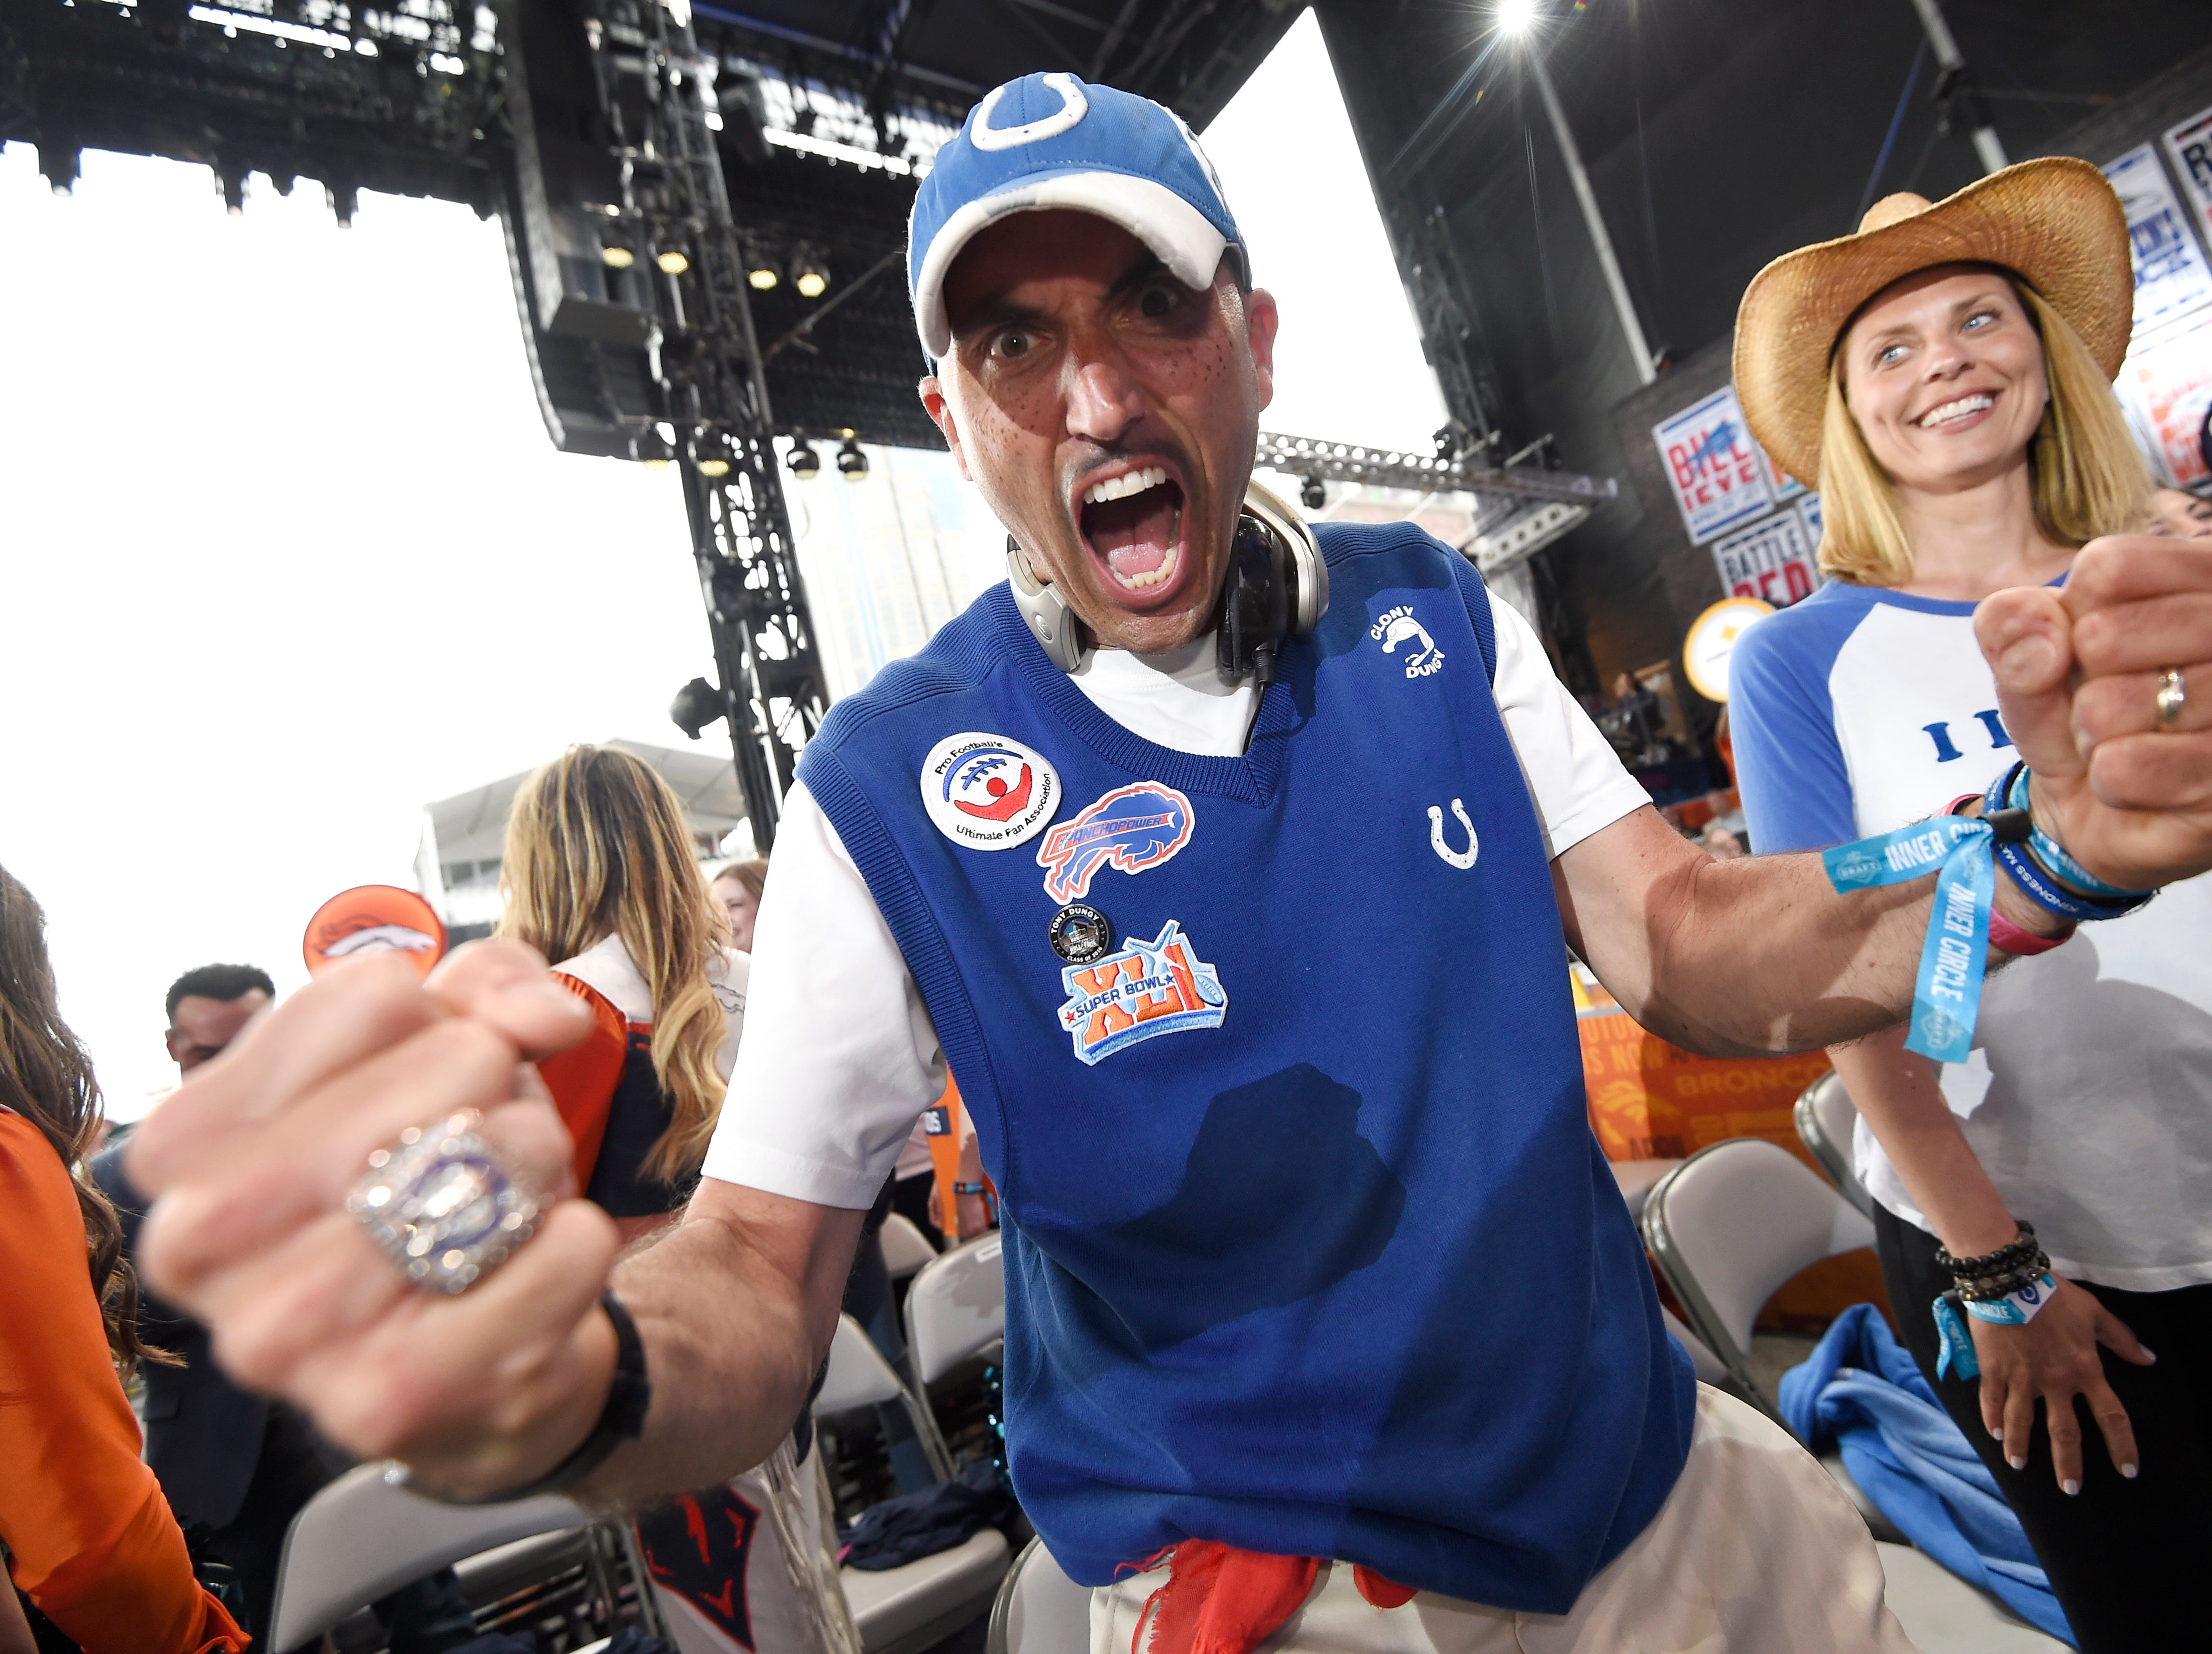 """Colts fan Mike """"Clony Dungy"""" Bostic is ready for the start of the first round of the NFL Draft Thursday, April 25, 2019, in Nashville, Tenn."""